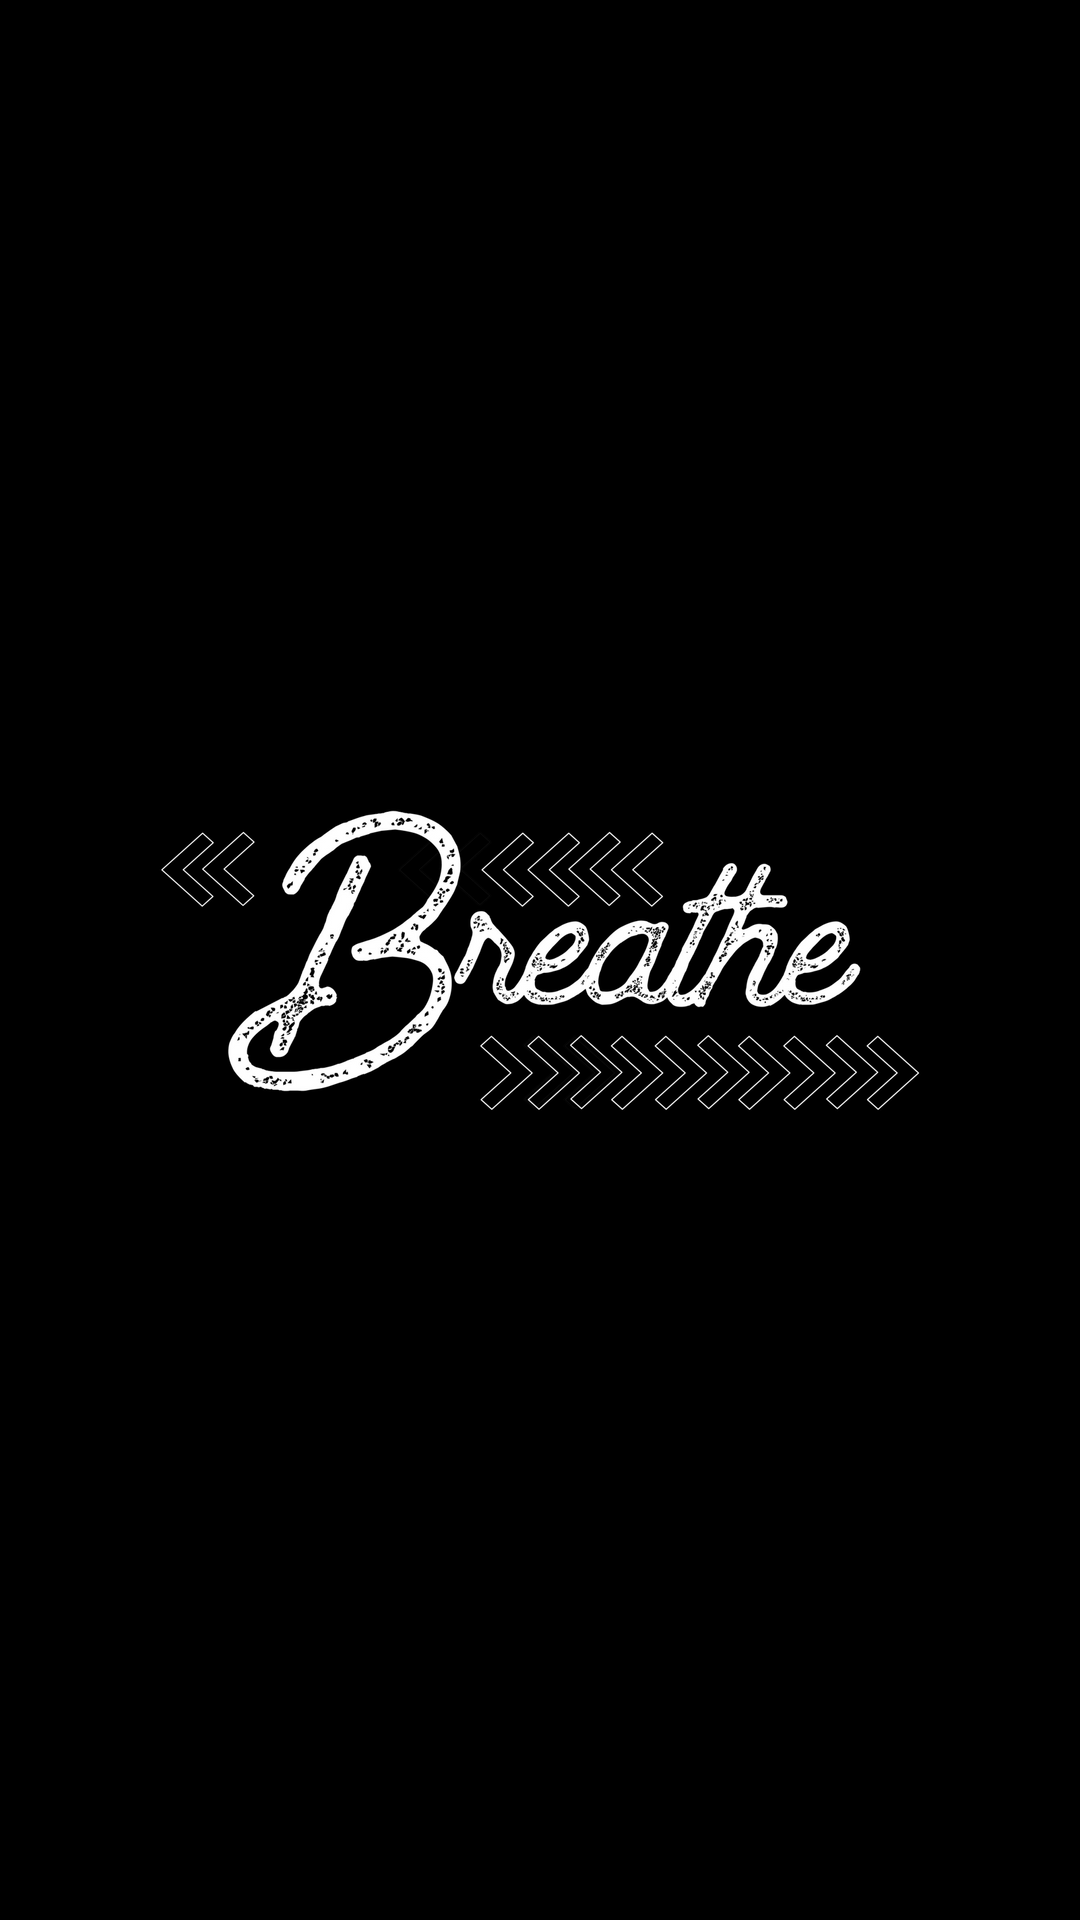 BreatheWallpaper